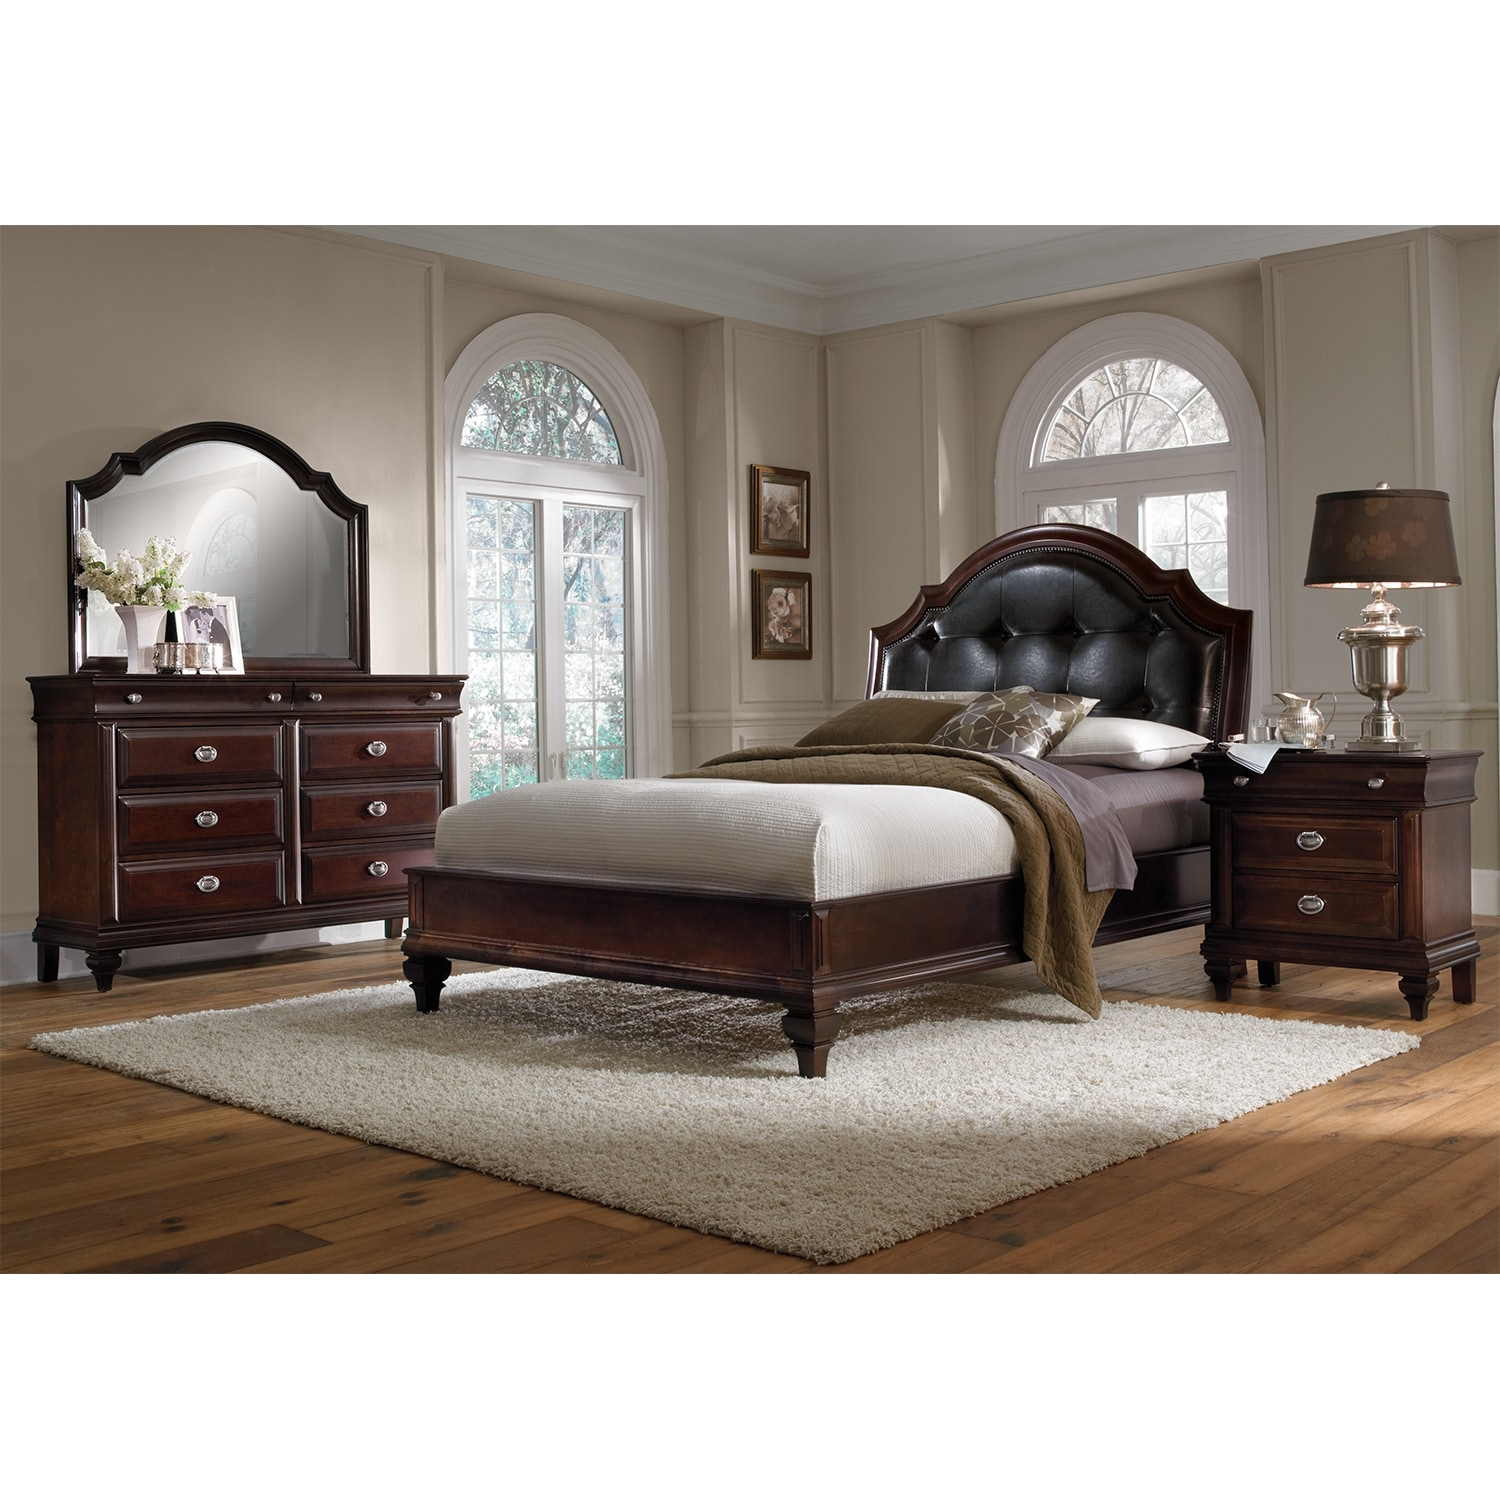 Manhattan 6-Piece Queen Upholstered Bedroom Set - Cherry ...